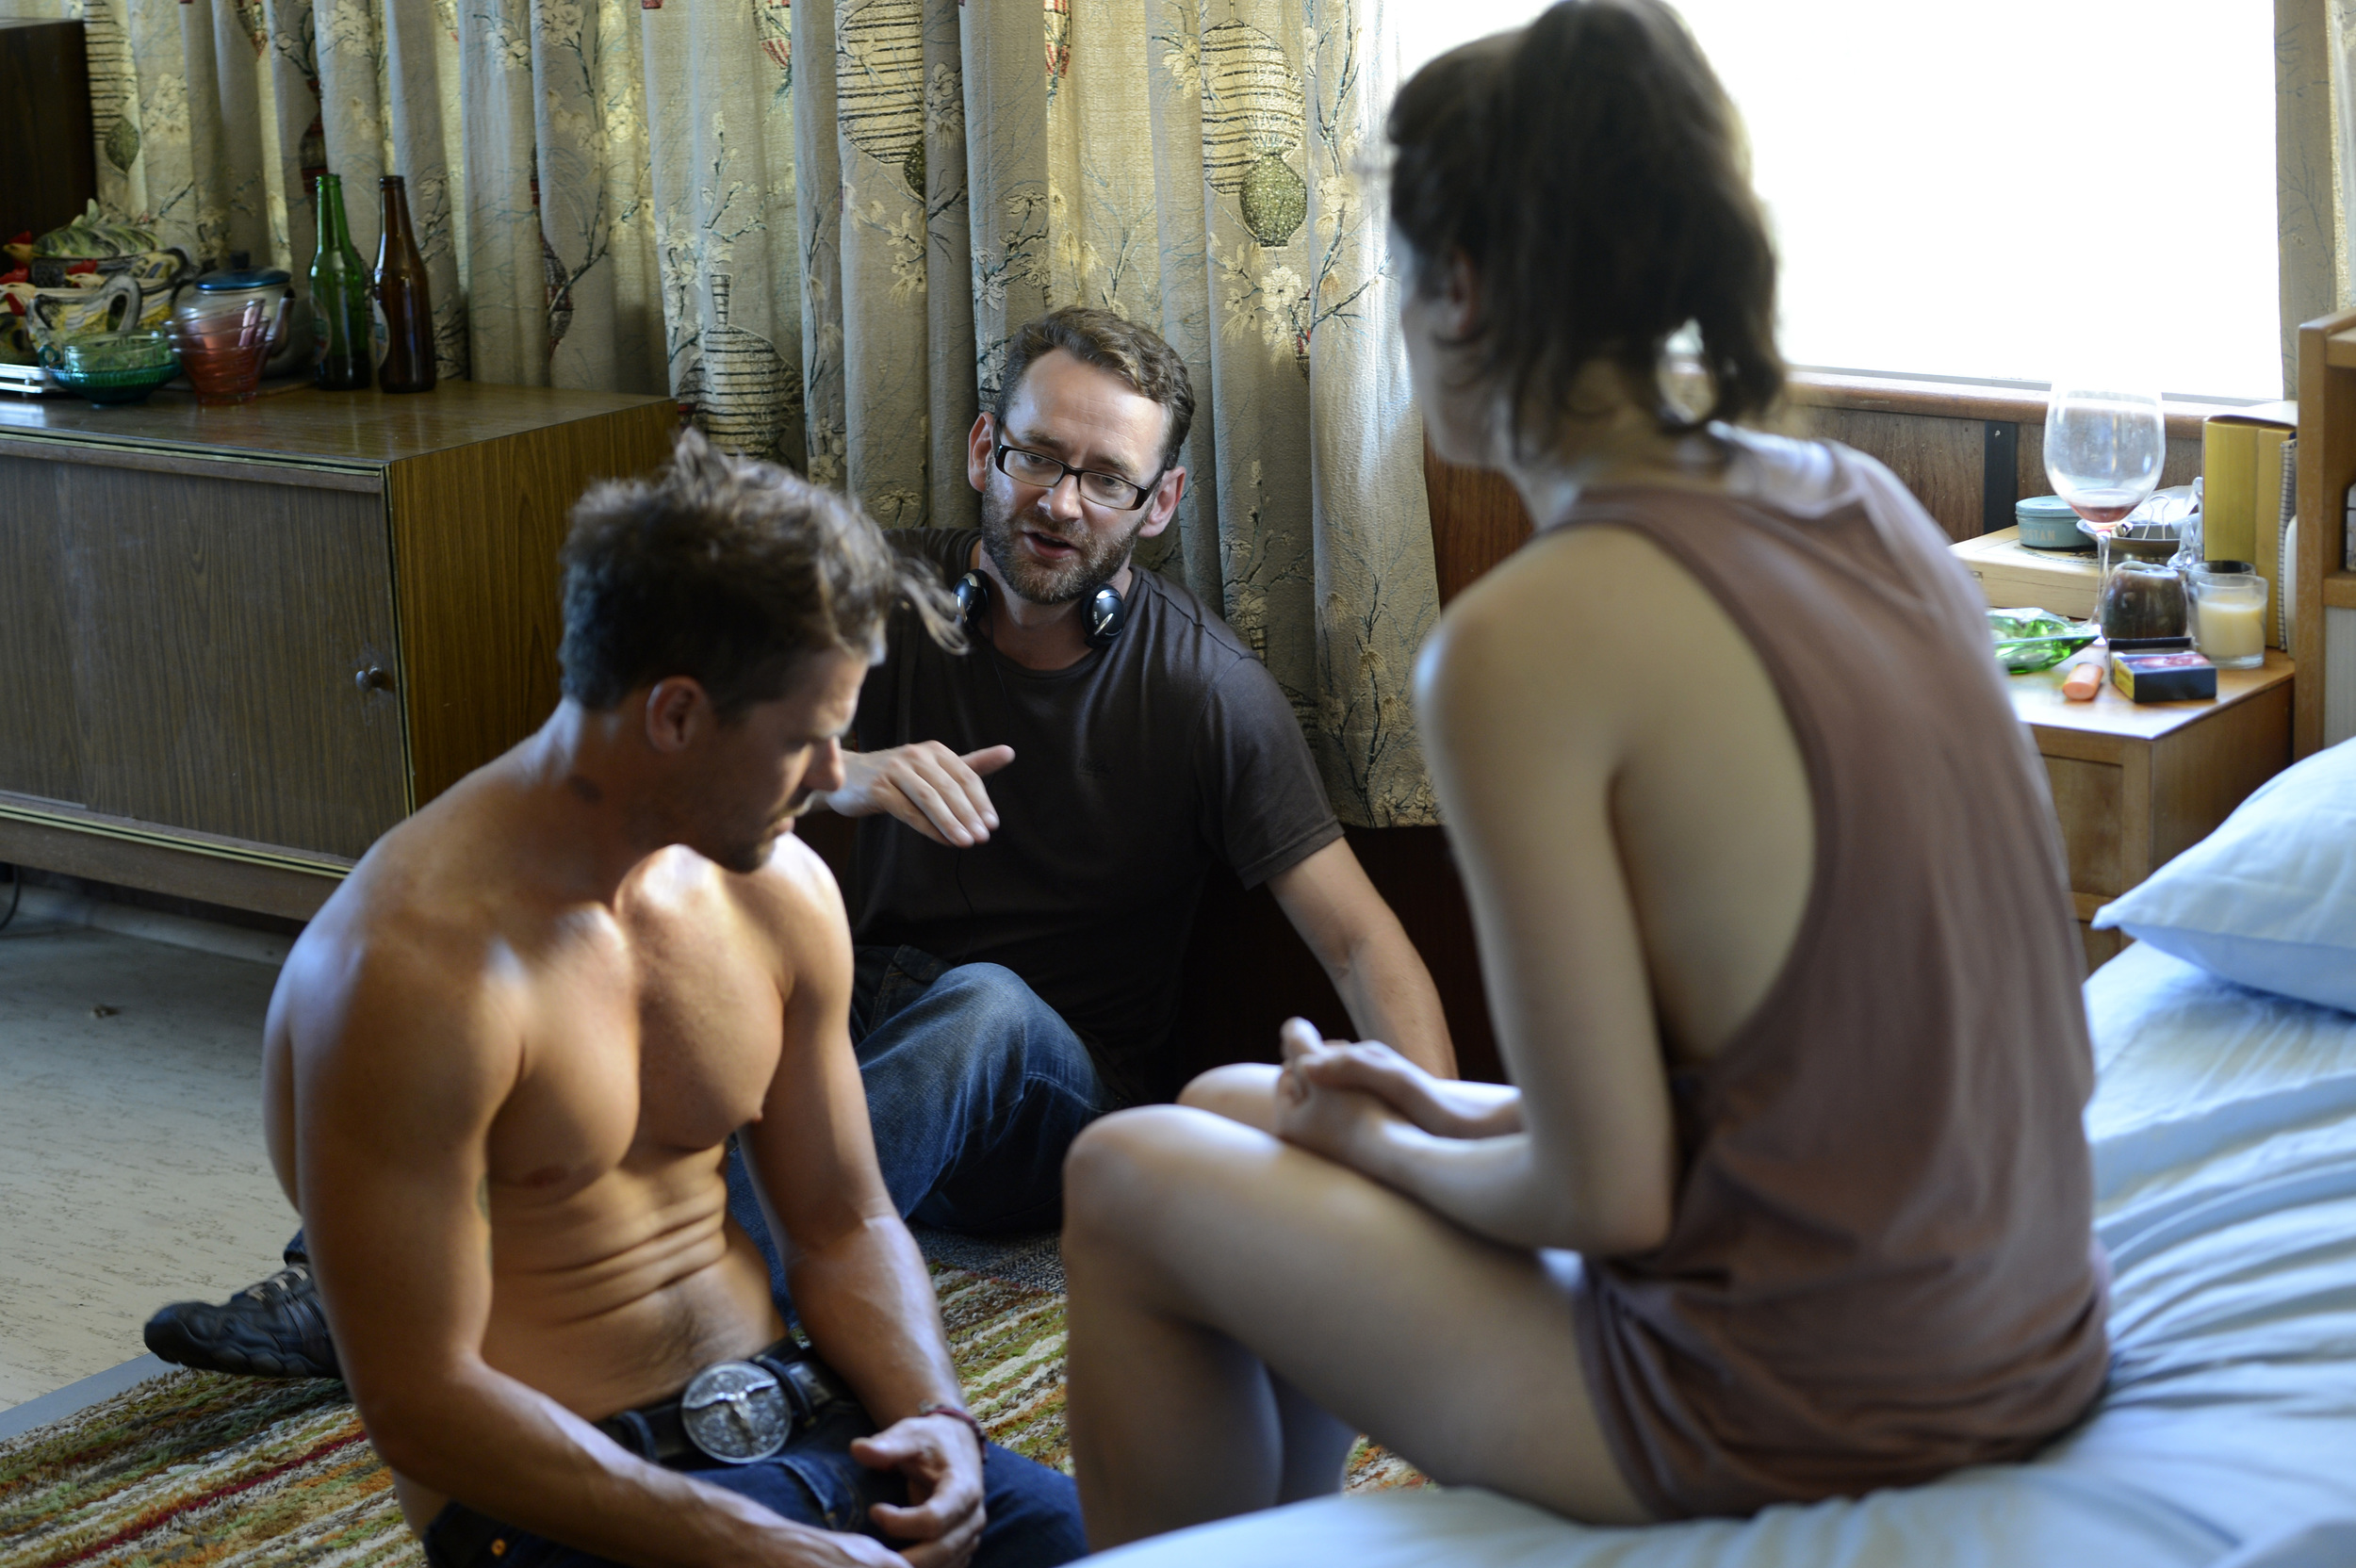 Zak directing Nathan Philip and Jess De Gouw on the set of These Final Hours